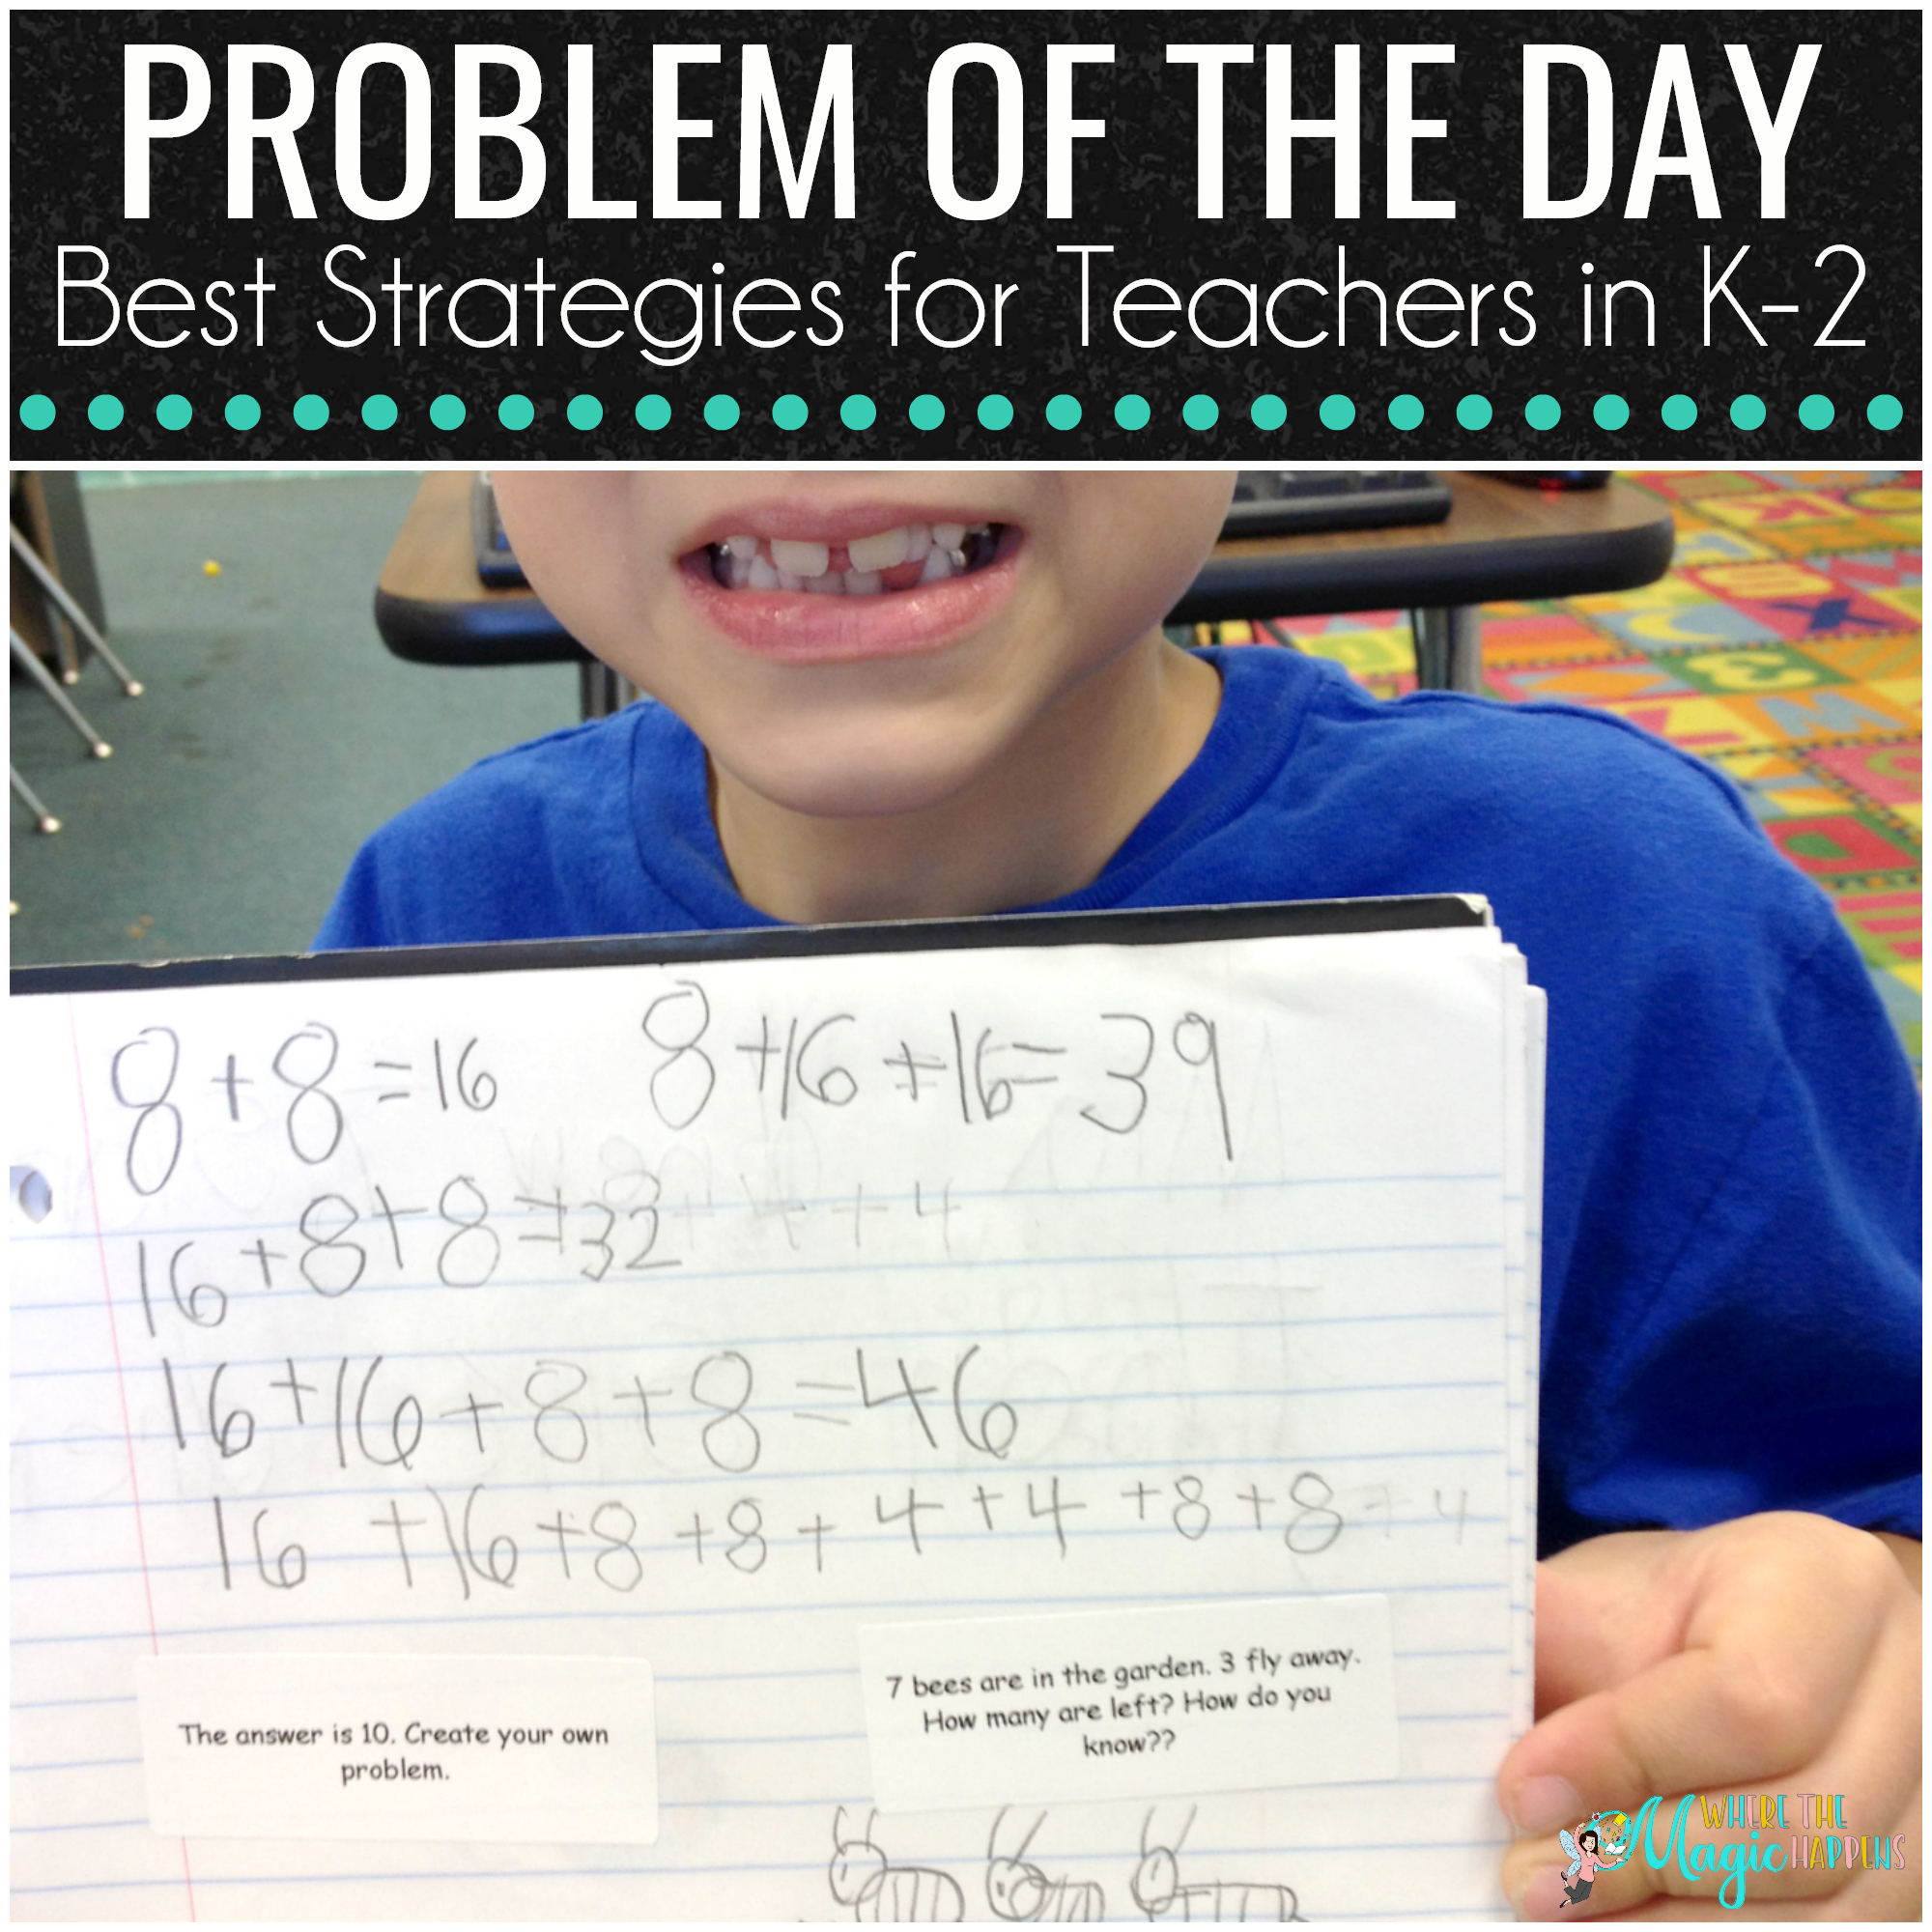 Problem of the Day for Teachers in K-2